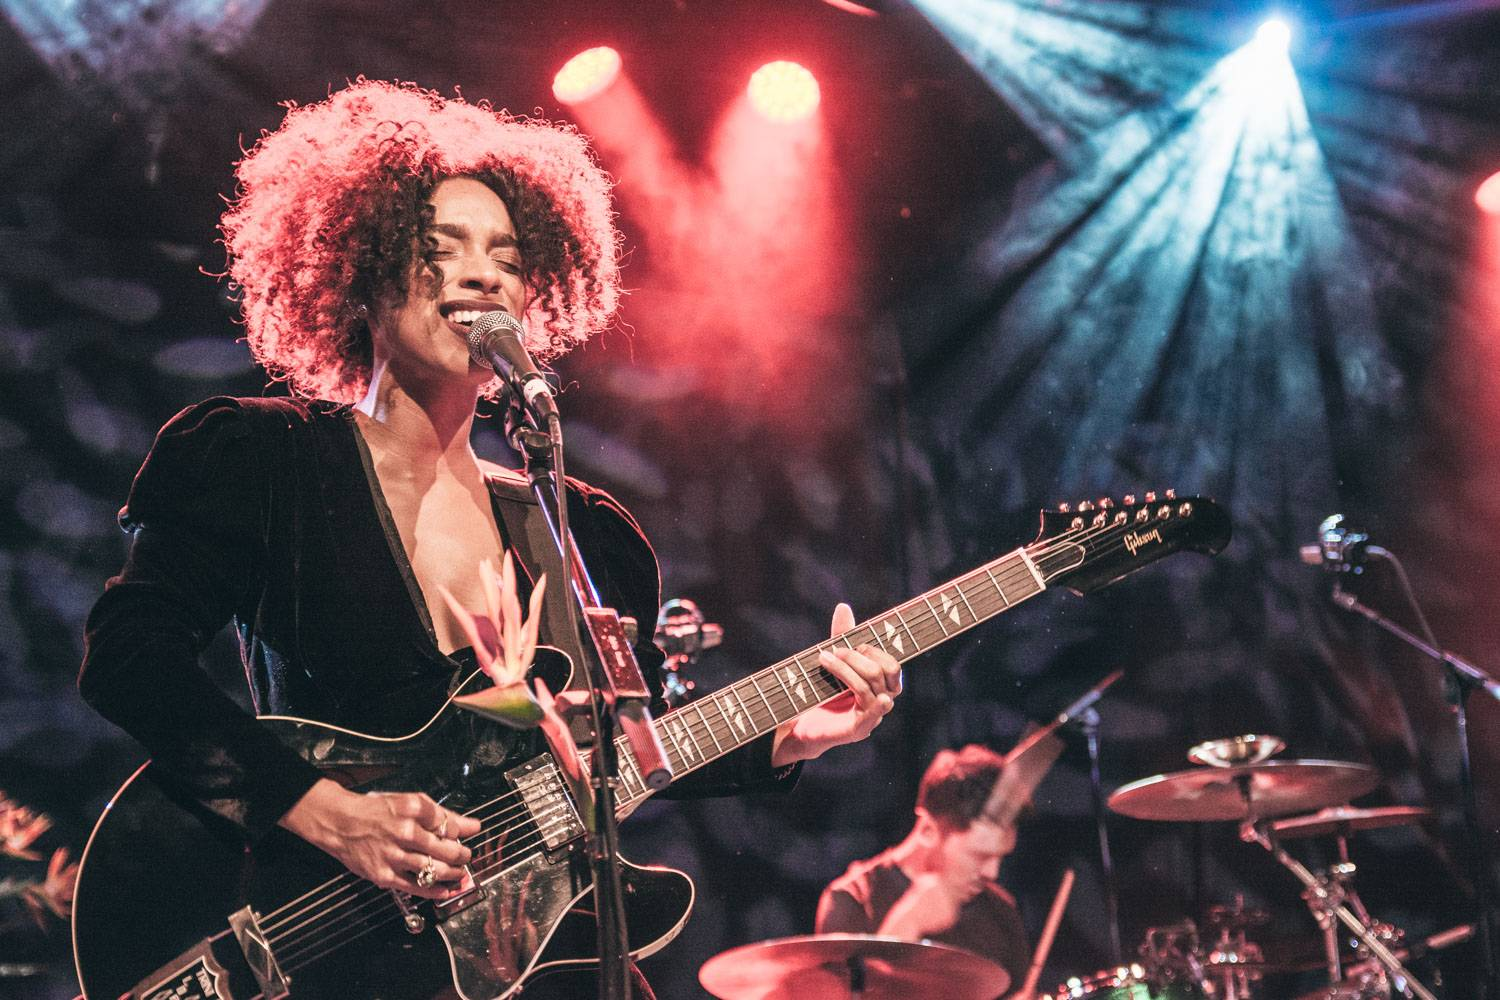 Lianne La Havas at the Commodore Ballroom, Vancouver, Oct 11 2015. Pavel Boiko photo.